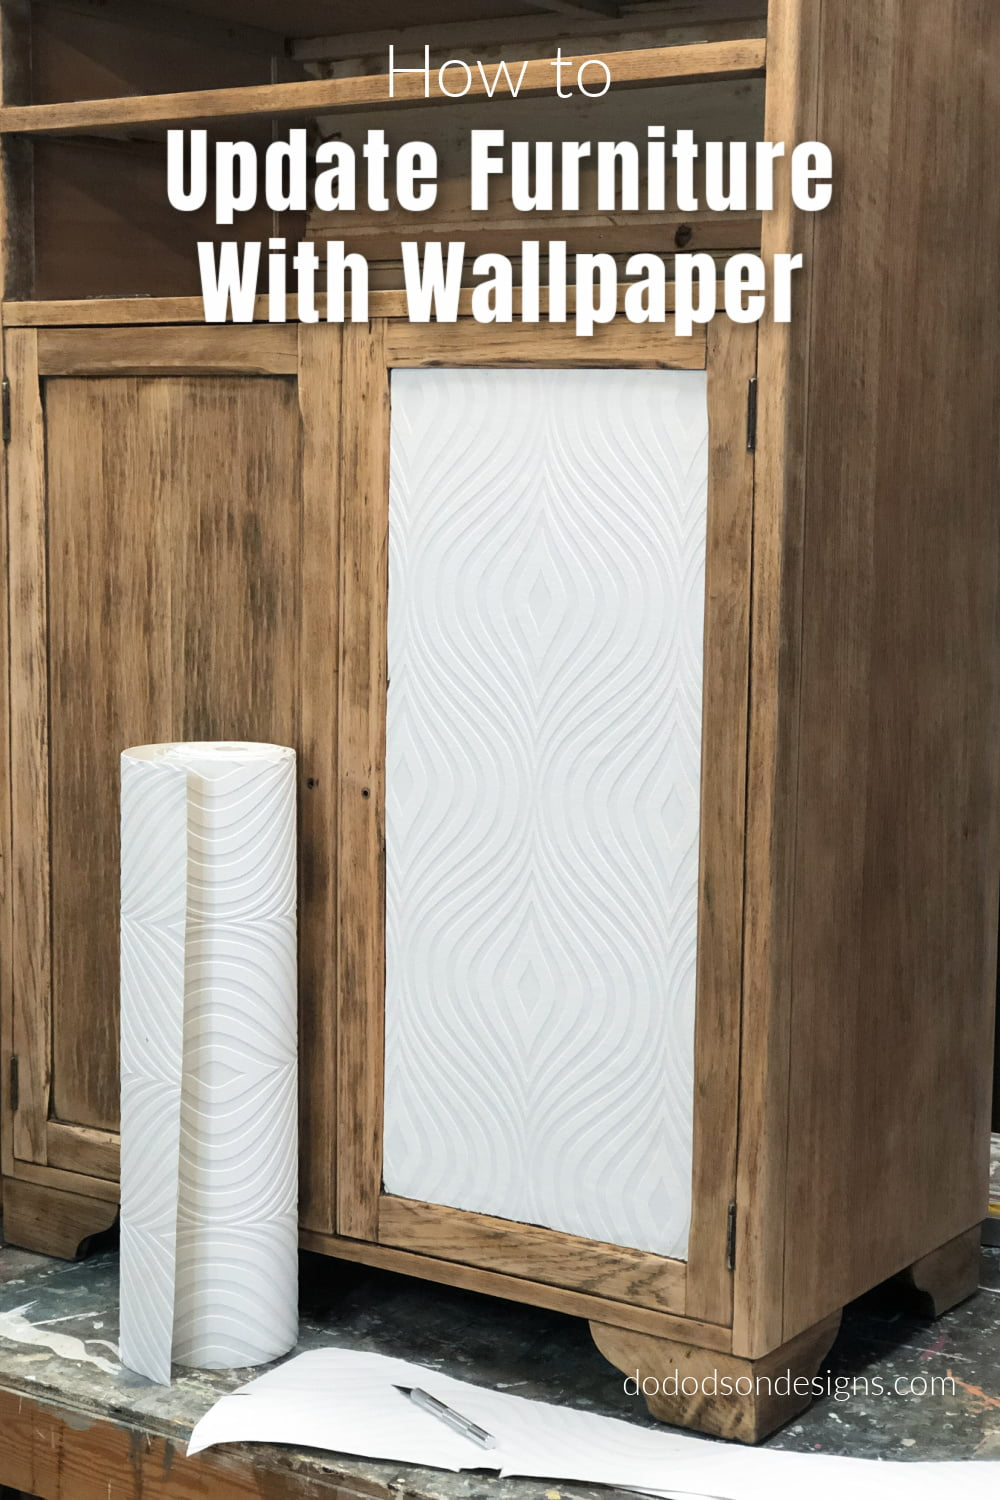 How To Update Furniture With Wallpaper